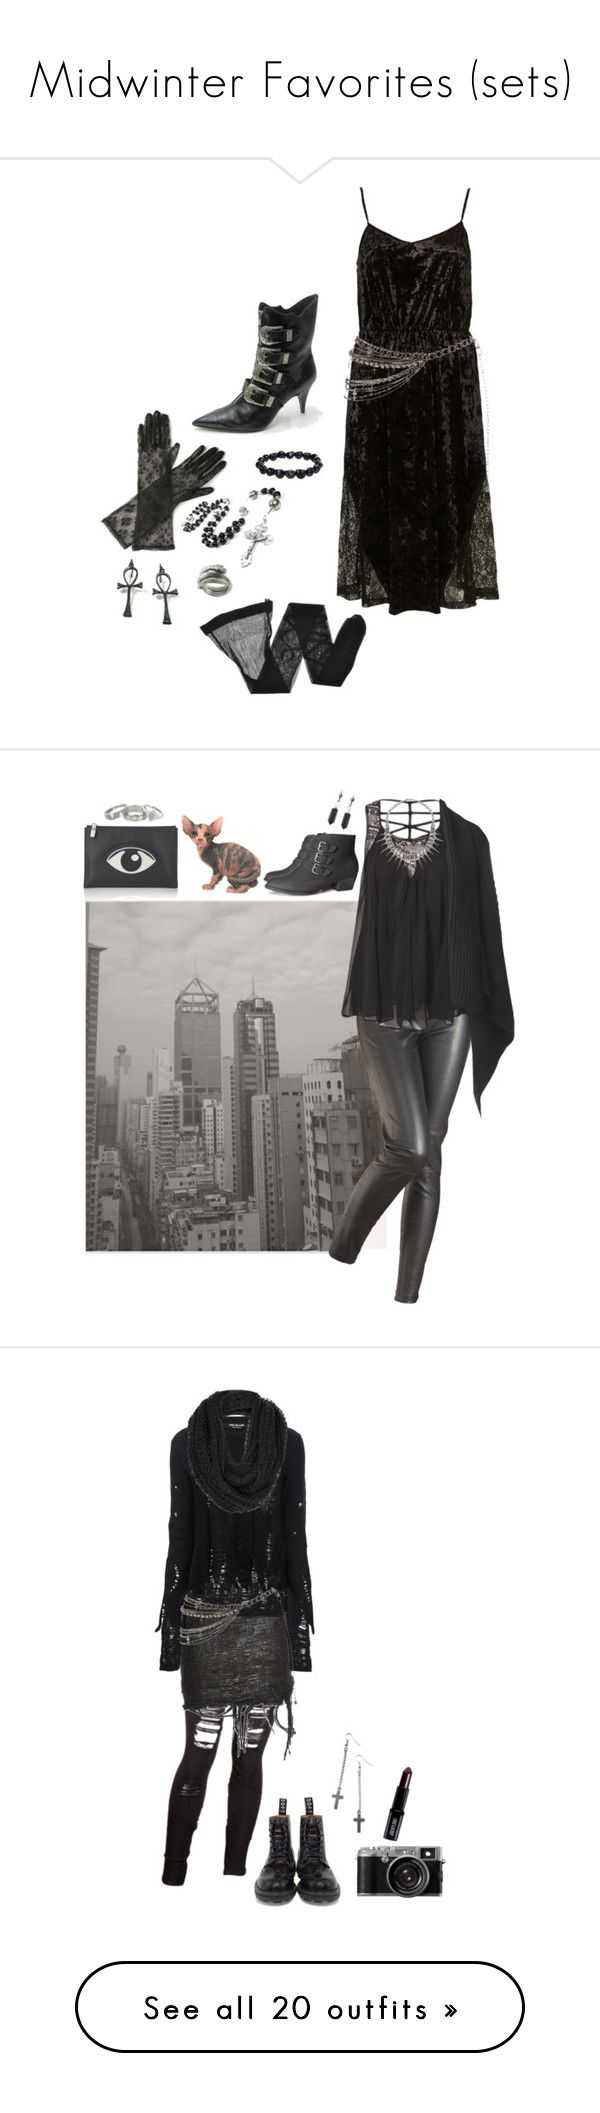 """Midwinter Favorites (sets)"" by void-witch ❤ liked on Polyvore featuring Max and Cleo, Topshop, Bjørg, Giorgio Armani, lace, goth, velvet, tradgoth, deathrock and Matthew Williamson"